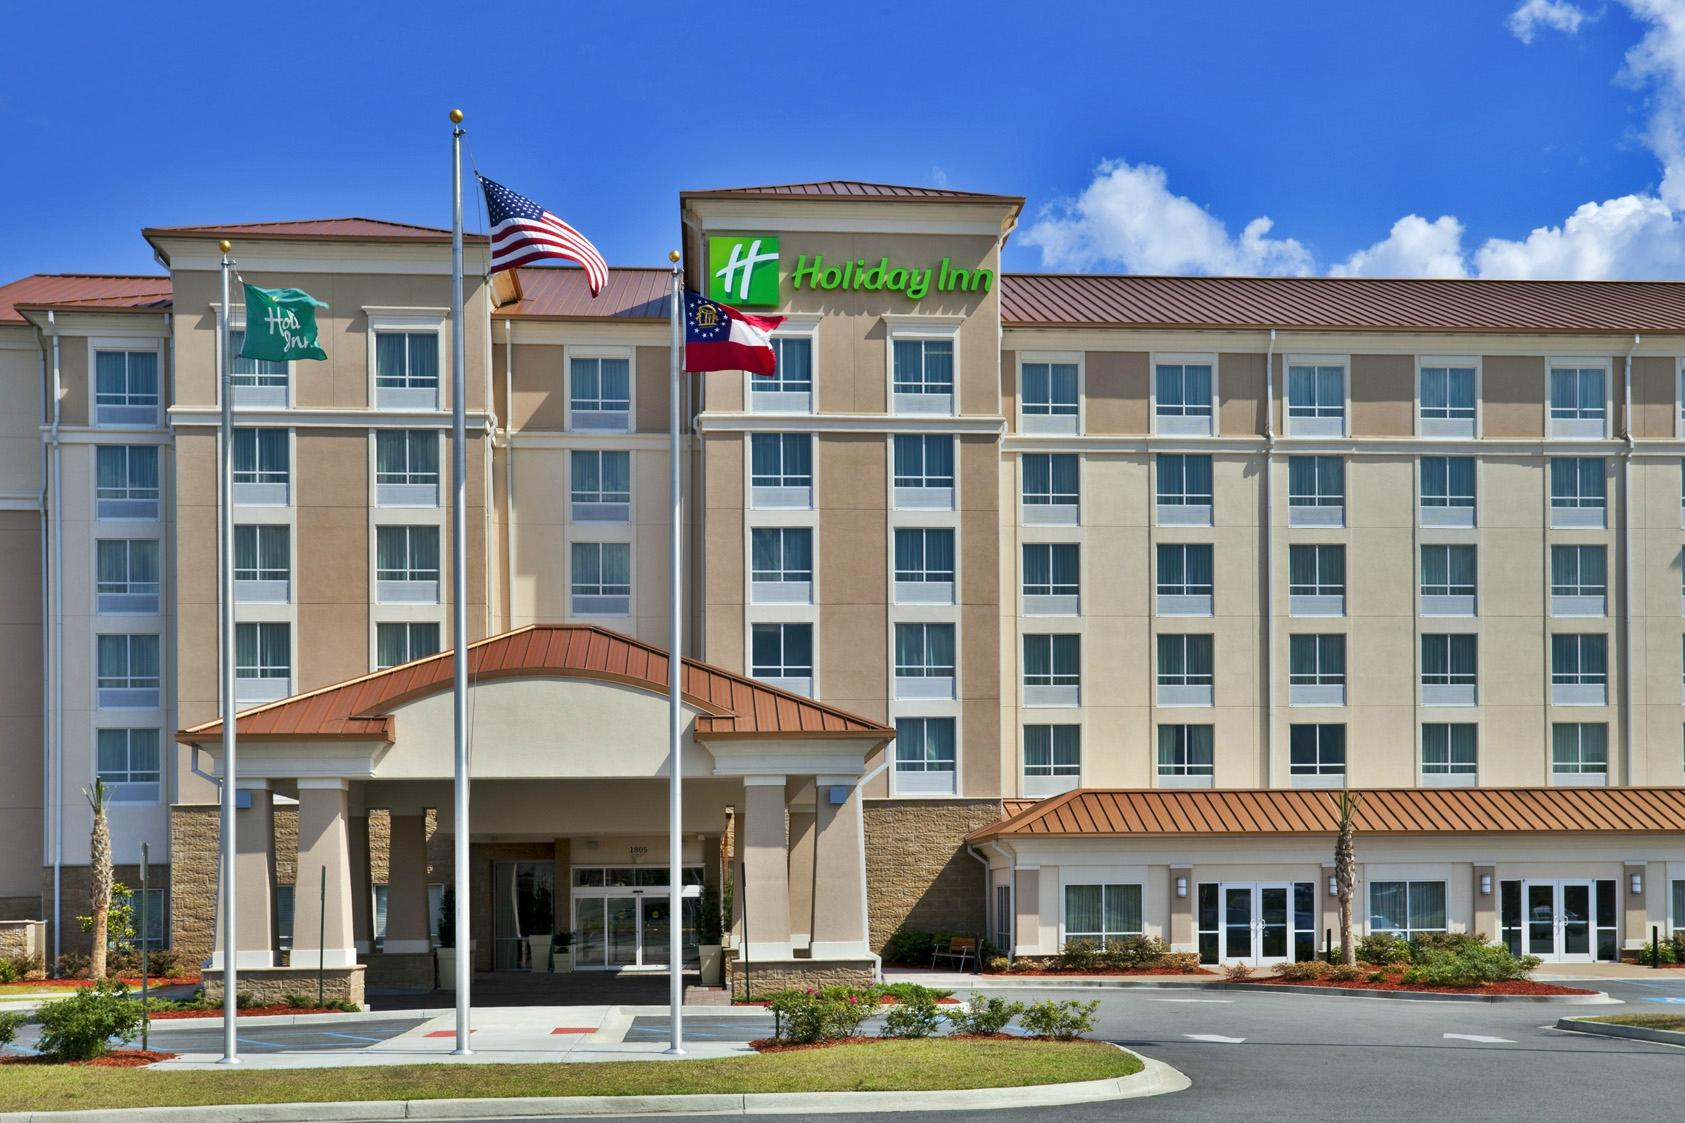 ‪Holiday Inn Hotel & Conference Center‬